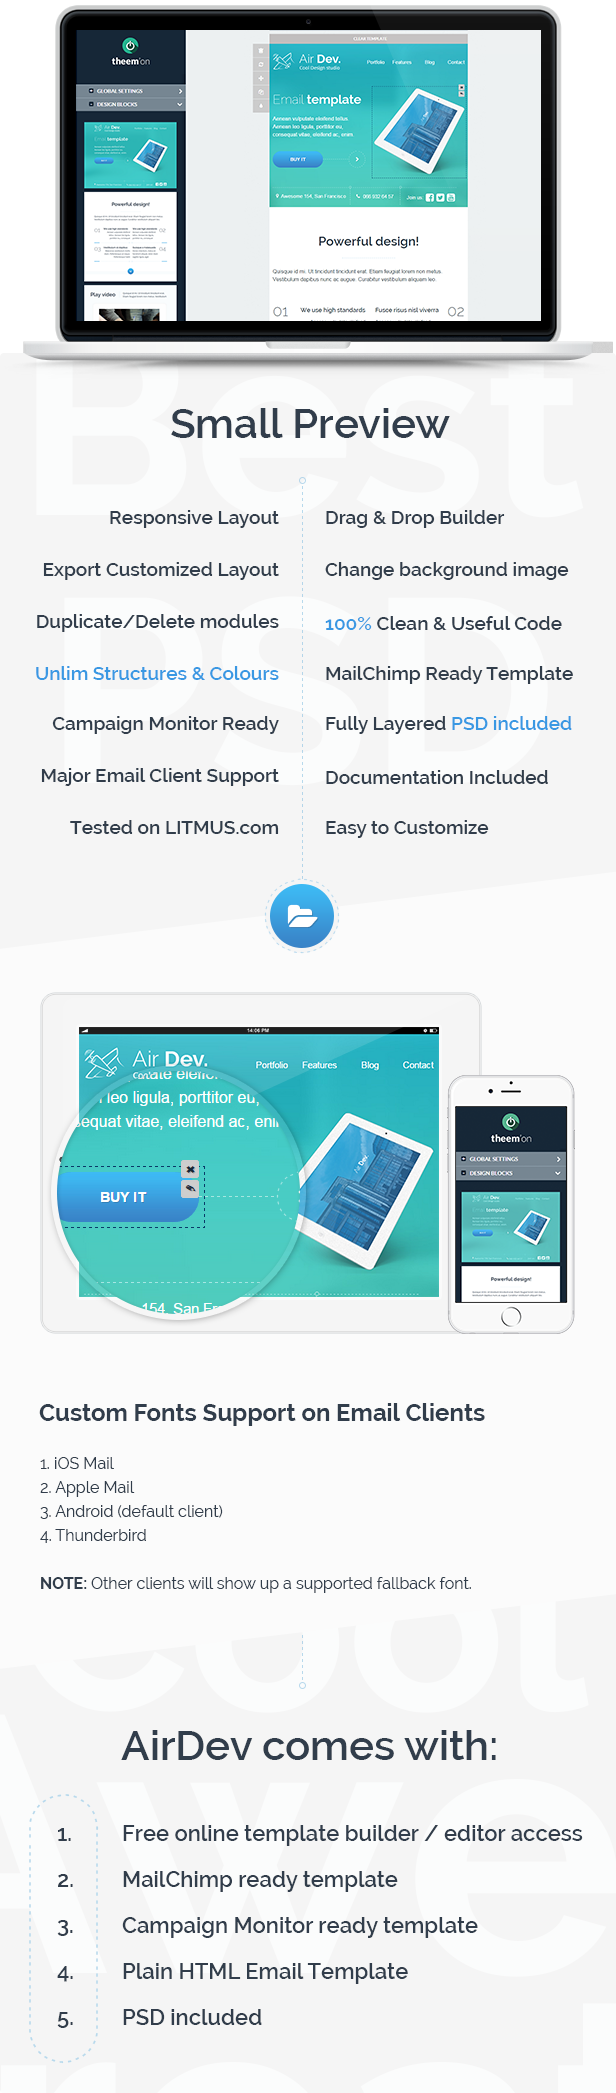 AirDev- Corporate Email Template + Builder Access